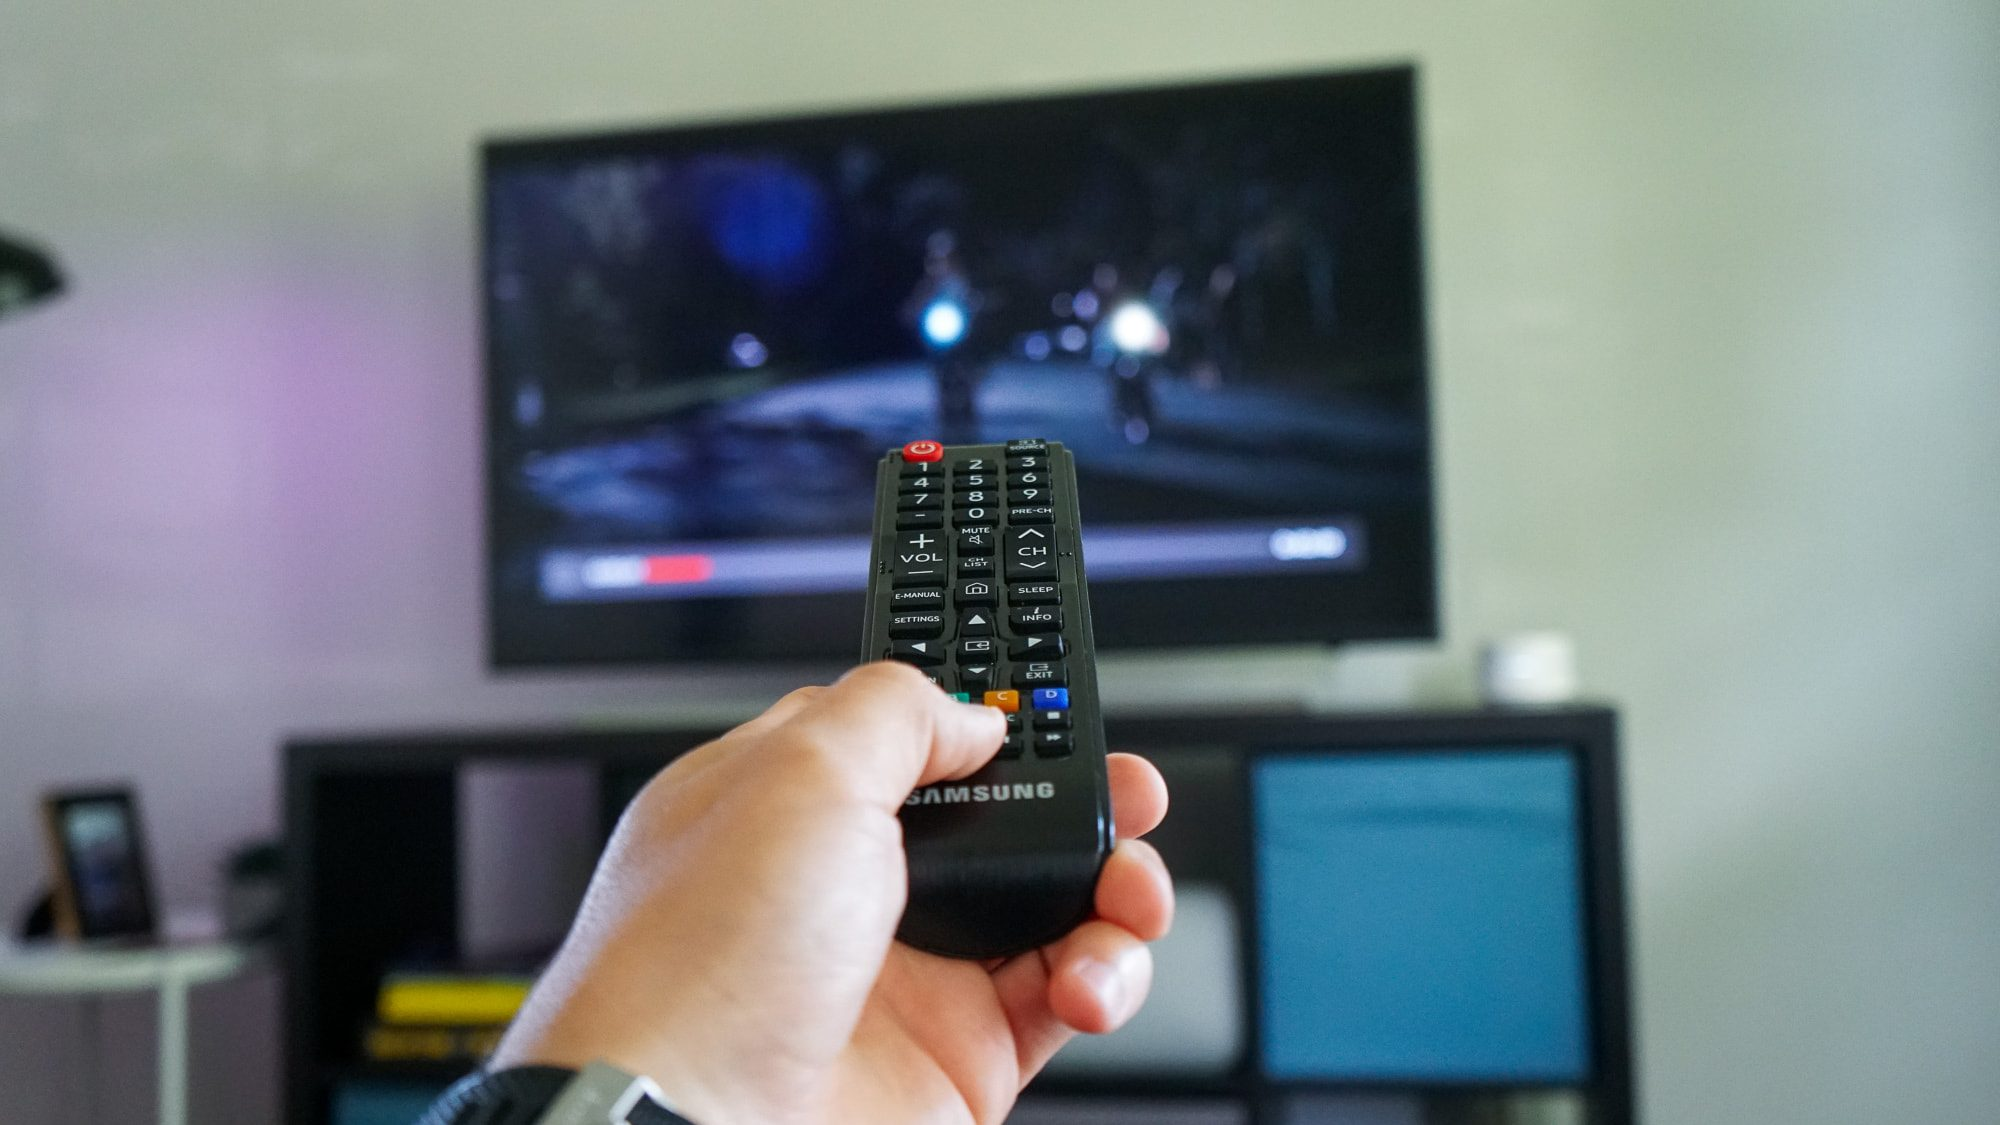 Want a Chromecast remote?  You likely already have one